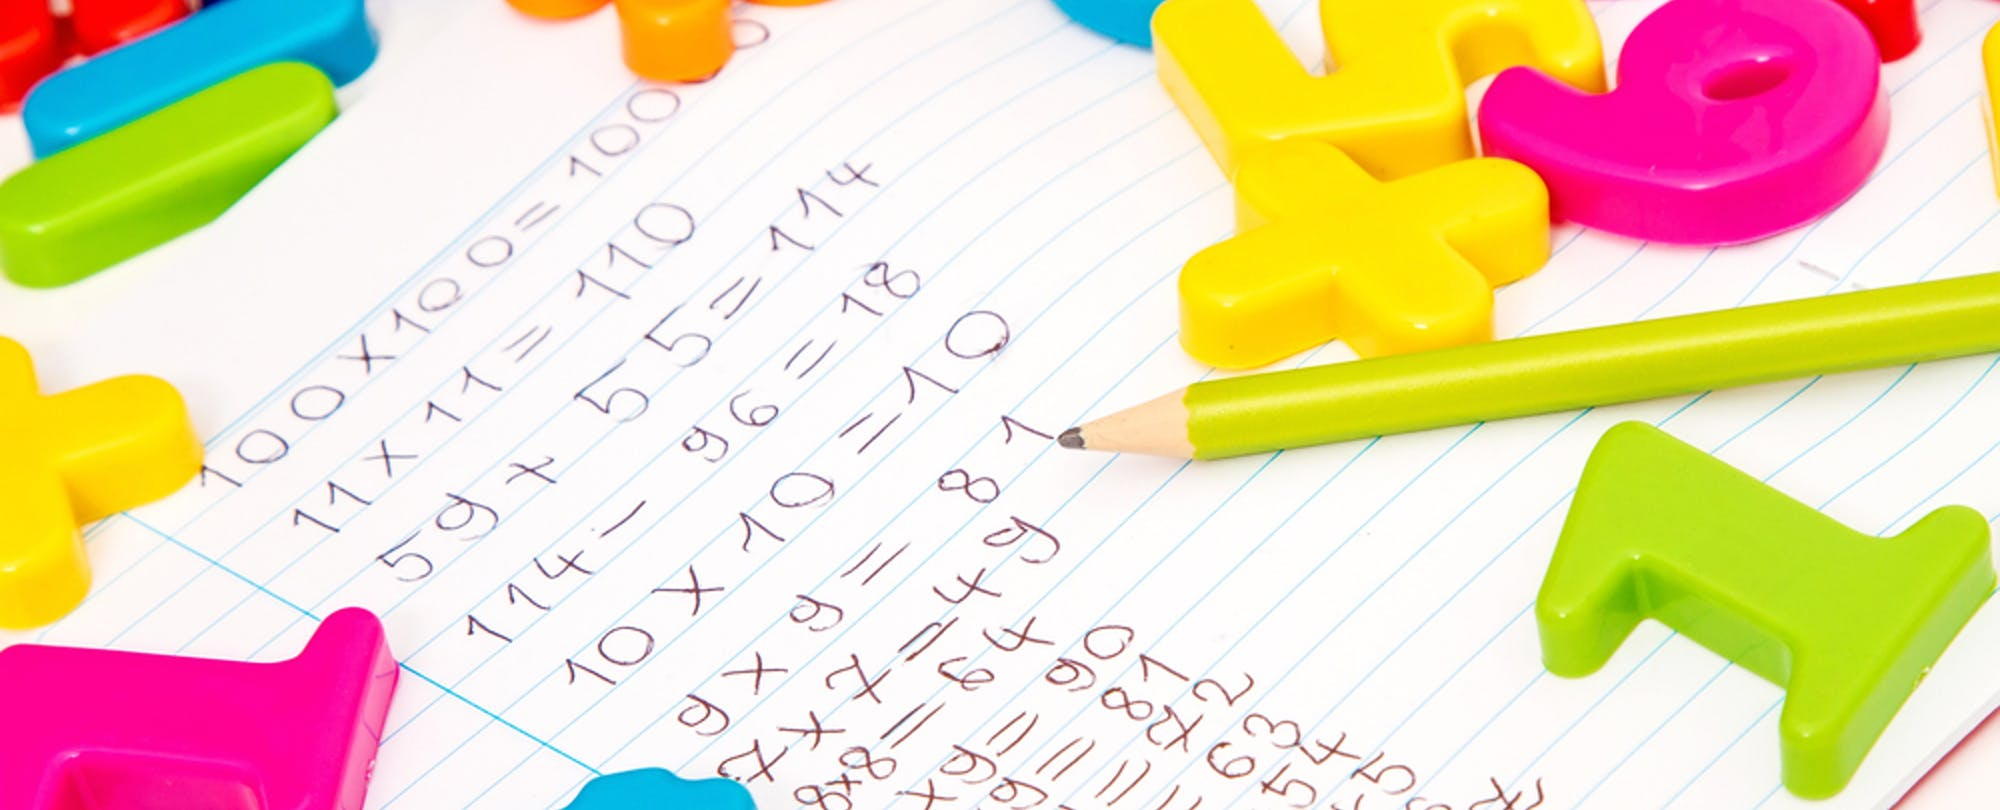 Harvard Finds That DreamBox Learning Improves Math Test Scores